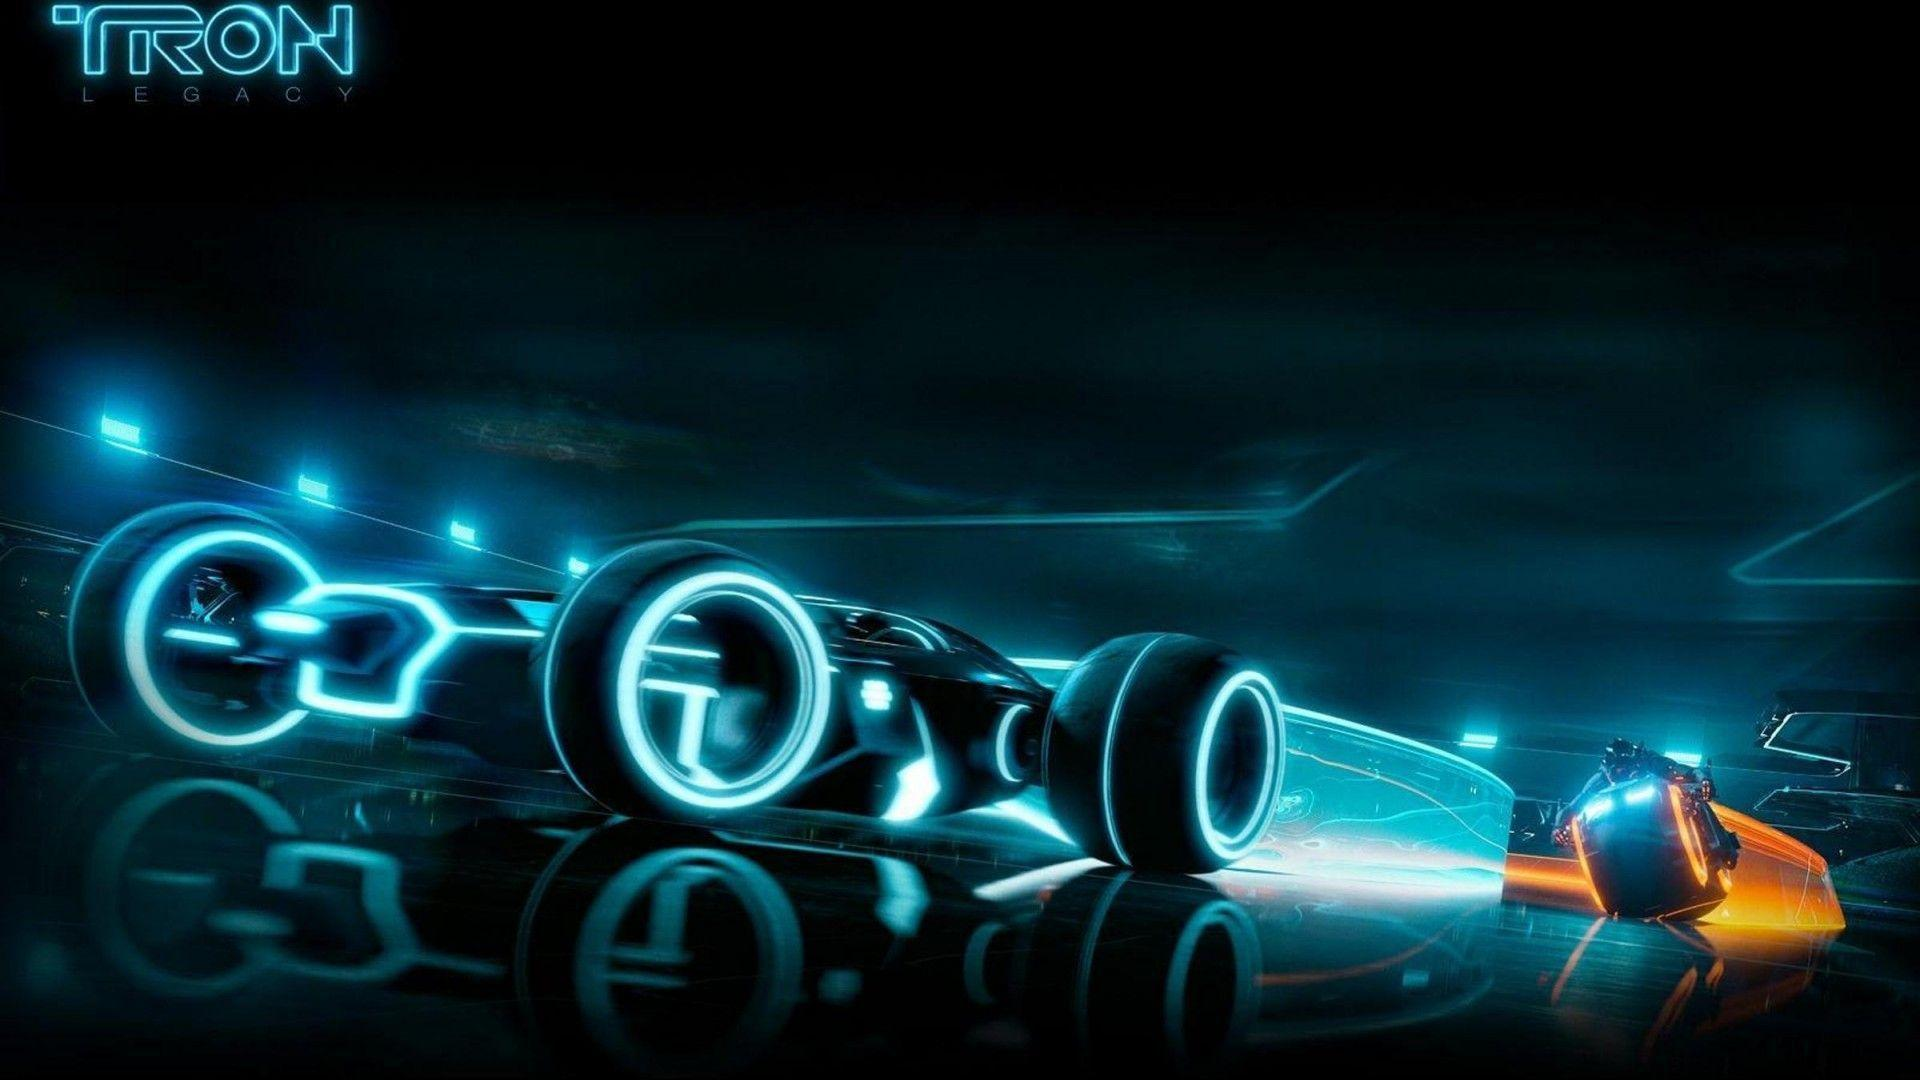 tron: legacy wallpapers 1080p - wallpaper cave